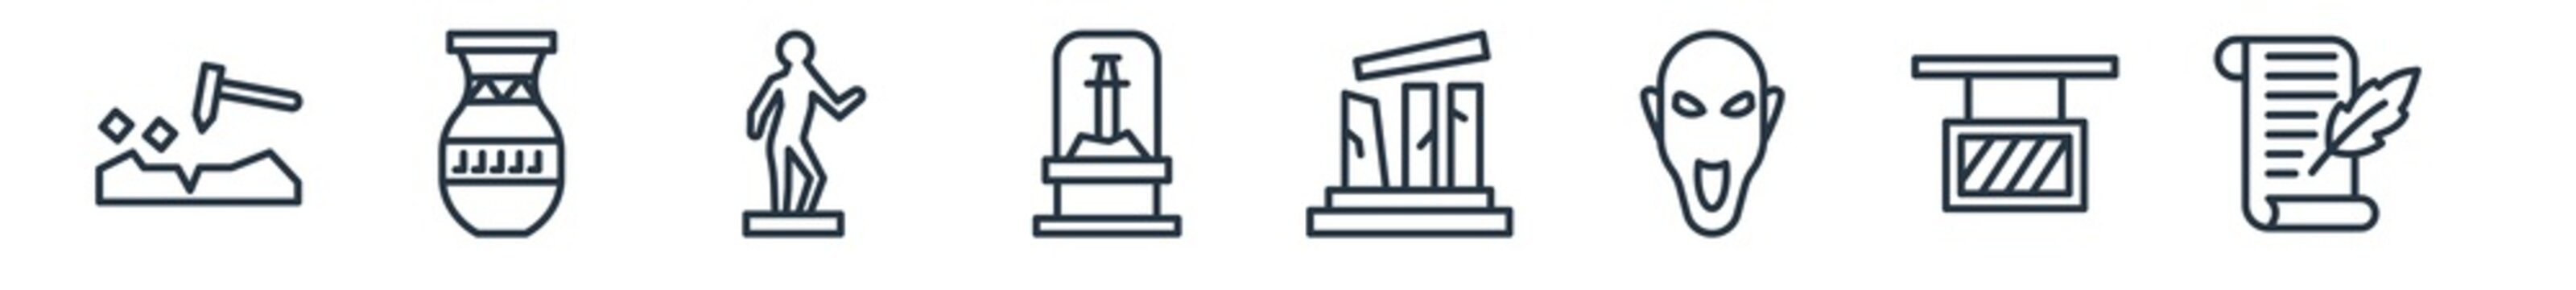 linear set of museum outline icons. line vector icons such as geological, ceramic, statue, remains, relics, poetry vector illustration.